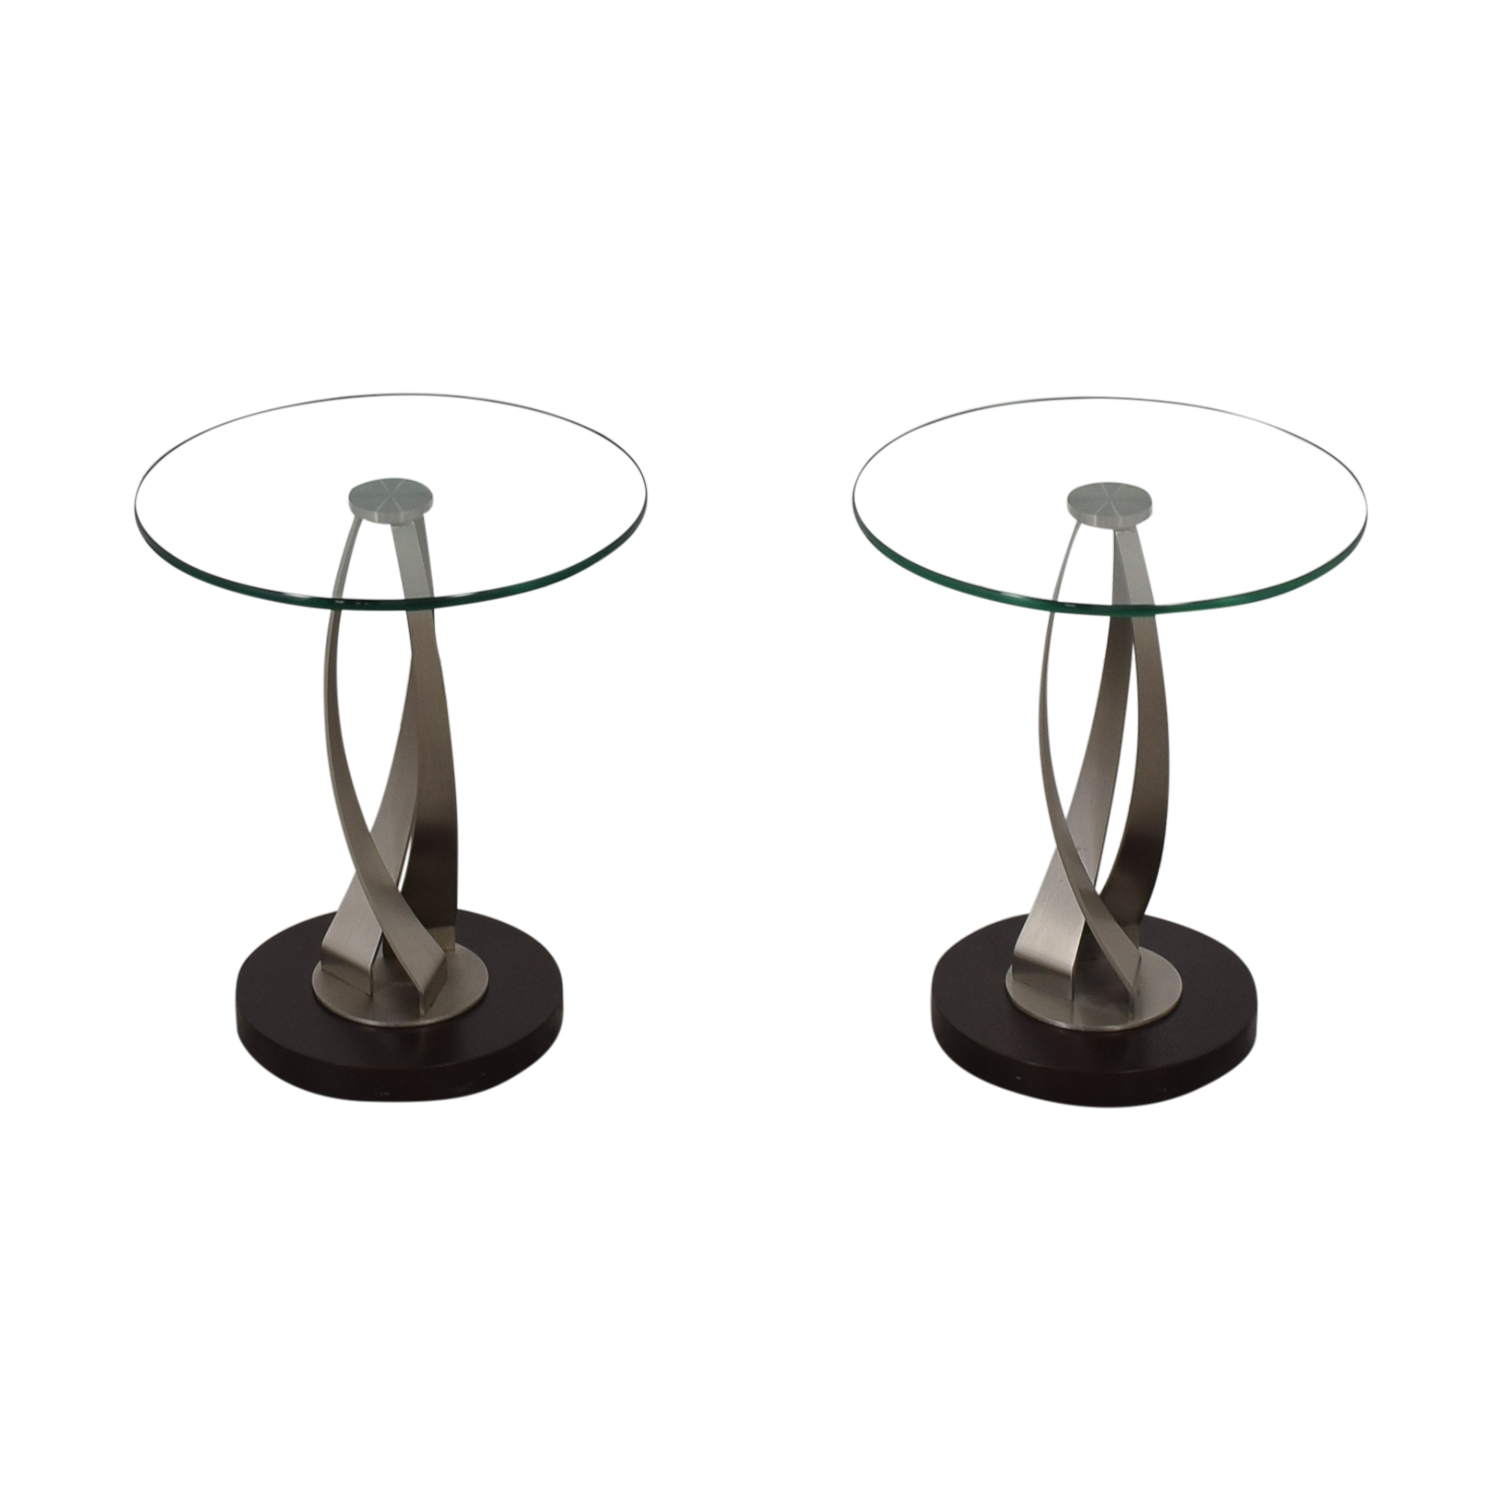 buy Pier 1 Pier 1 Round Glass Side Tables online